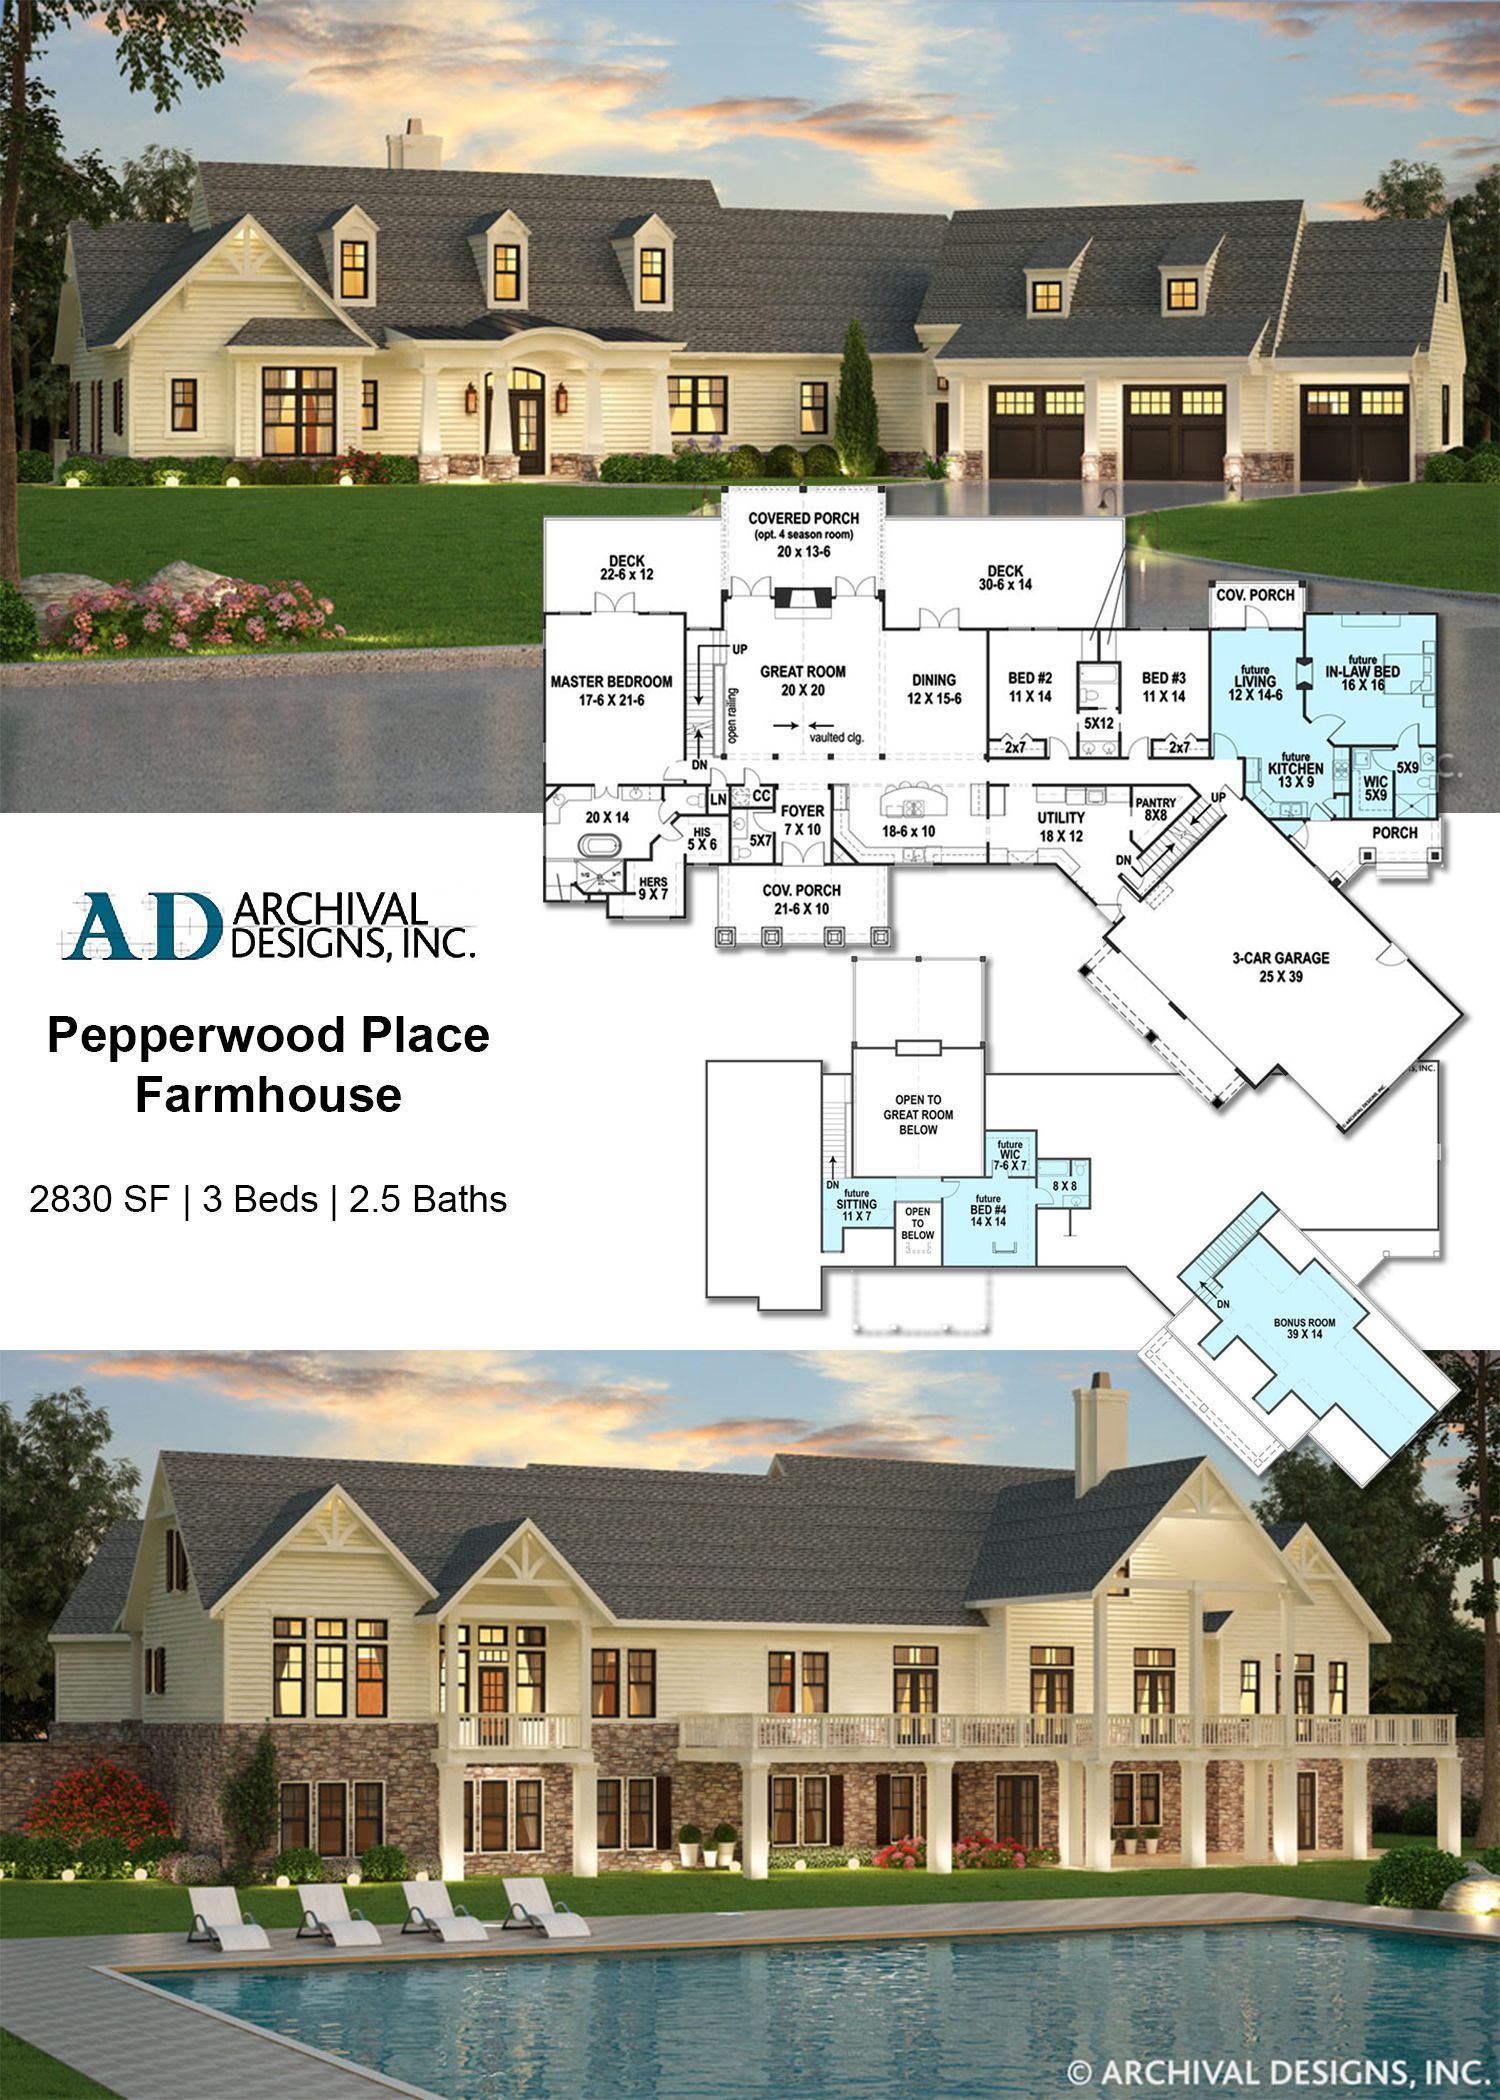 Pepperwood Place